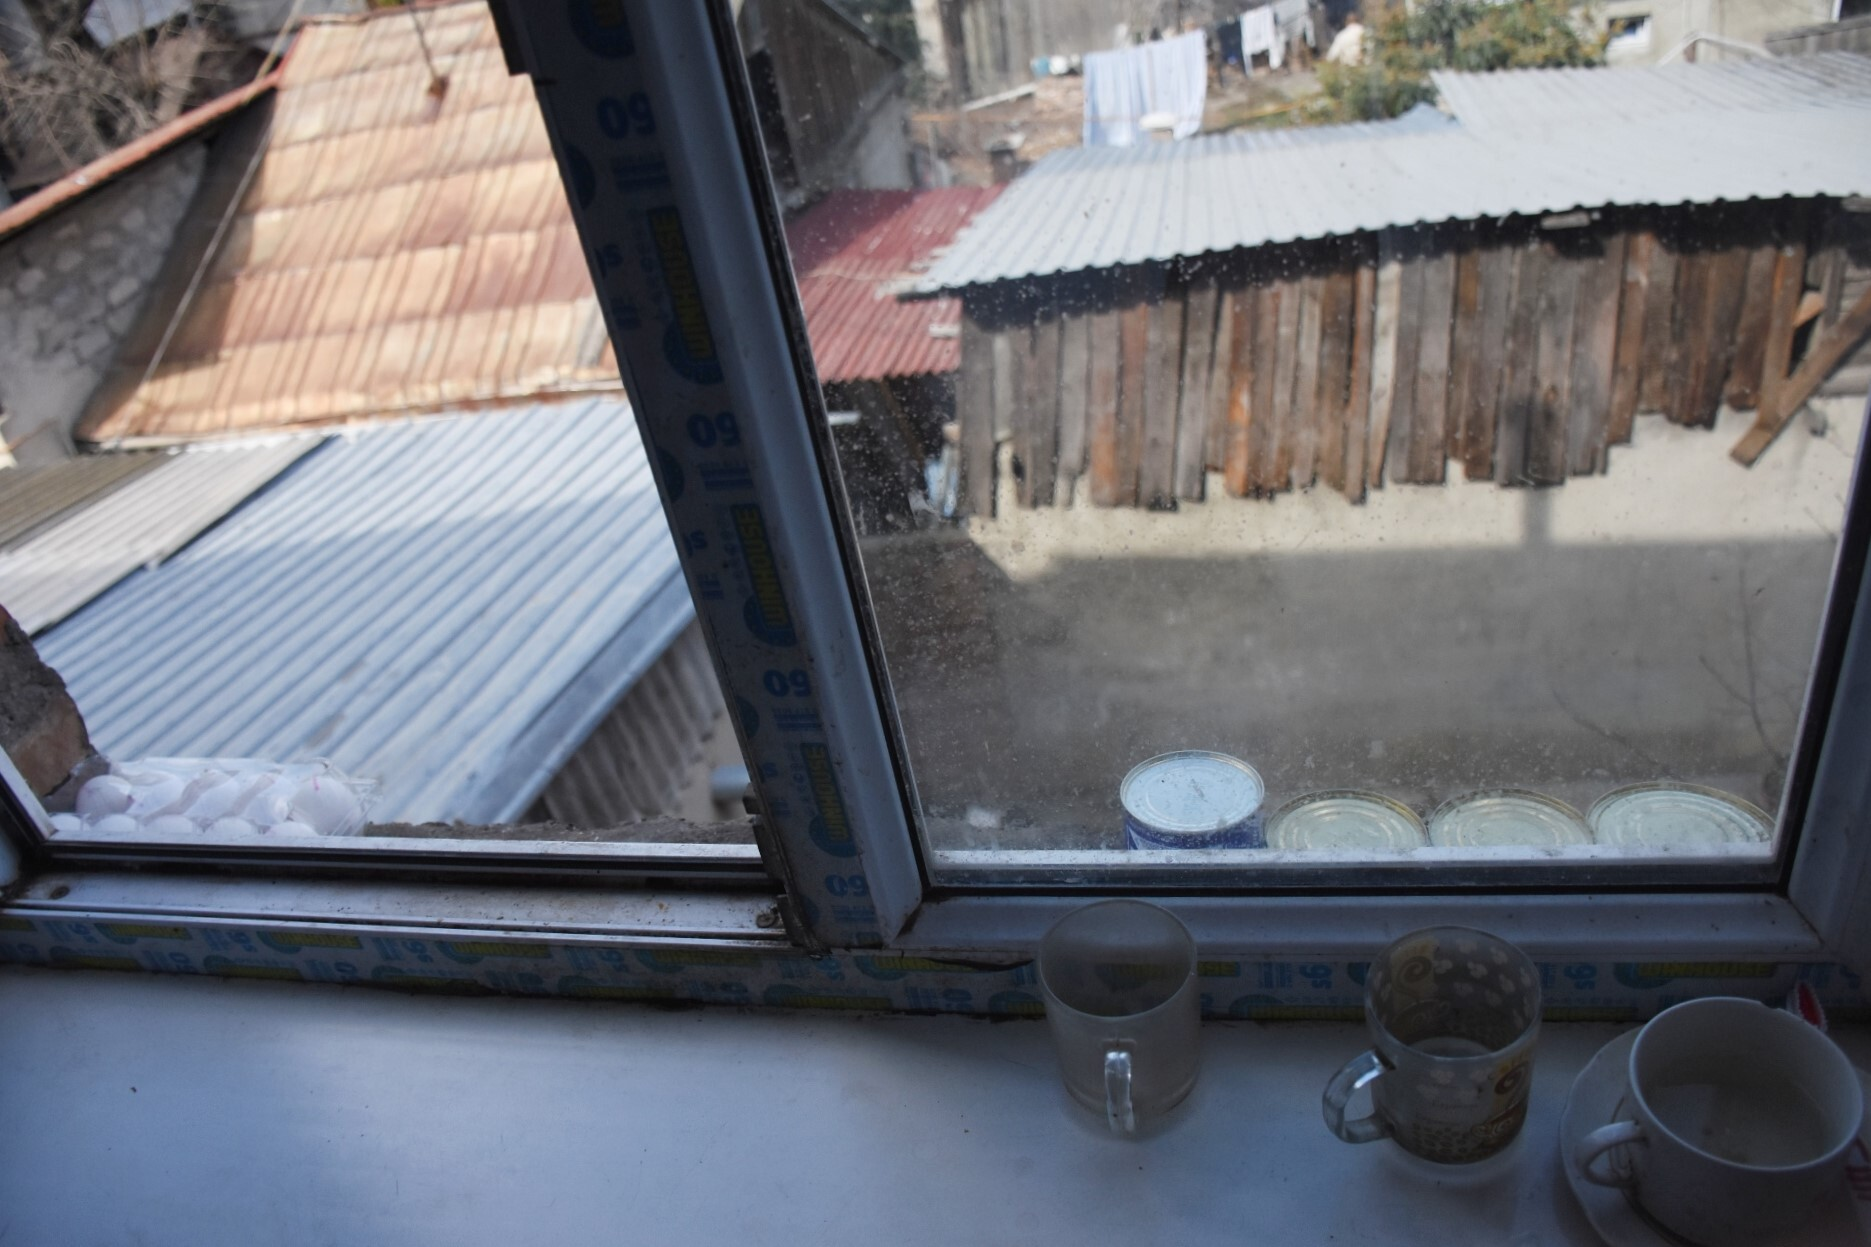 Sandro stores food on the window ledge as he does not have a refrigerator. Photo: Tata Shoshiashvili/OC Media.